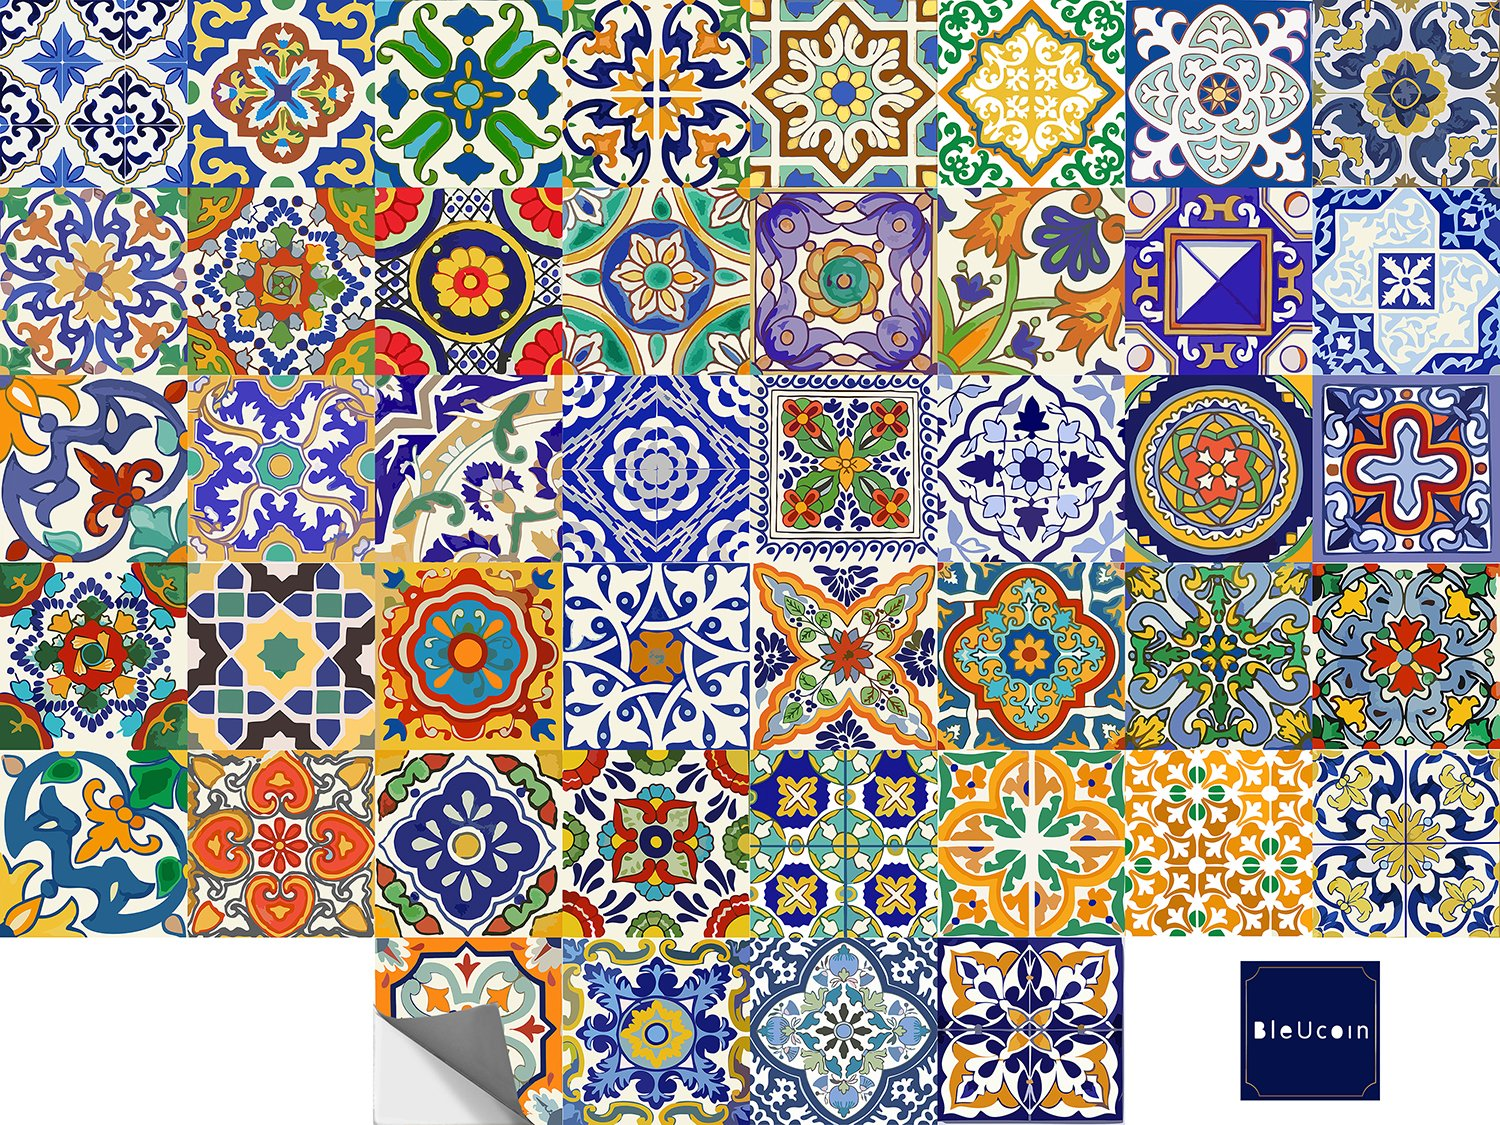 Spanish Mediterranean Talavera Tile Stickers for Kitchen Bathroom Backslash, Removable Stair Riser Decal Peel and Stick Home Decor- 44 Designs - Pack of 44 (8'' x 8'' Inches) by Bleucoin (Image #3)